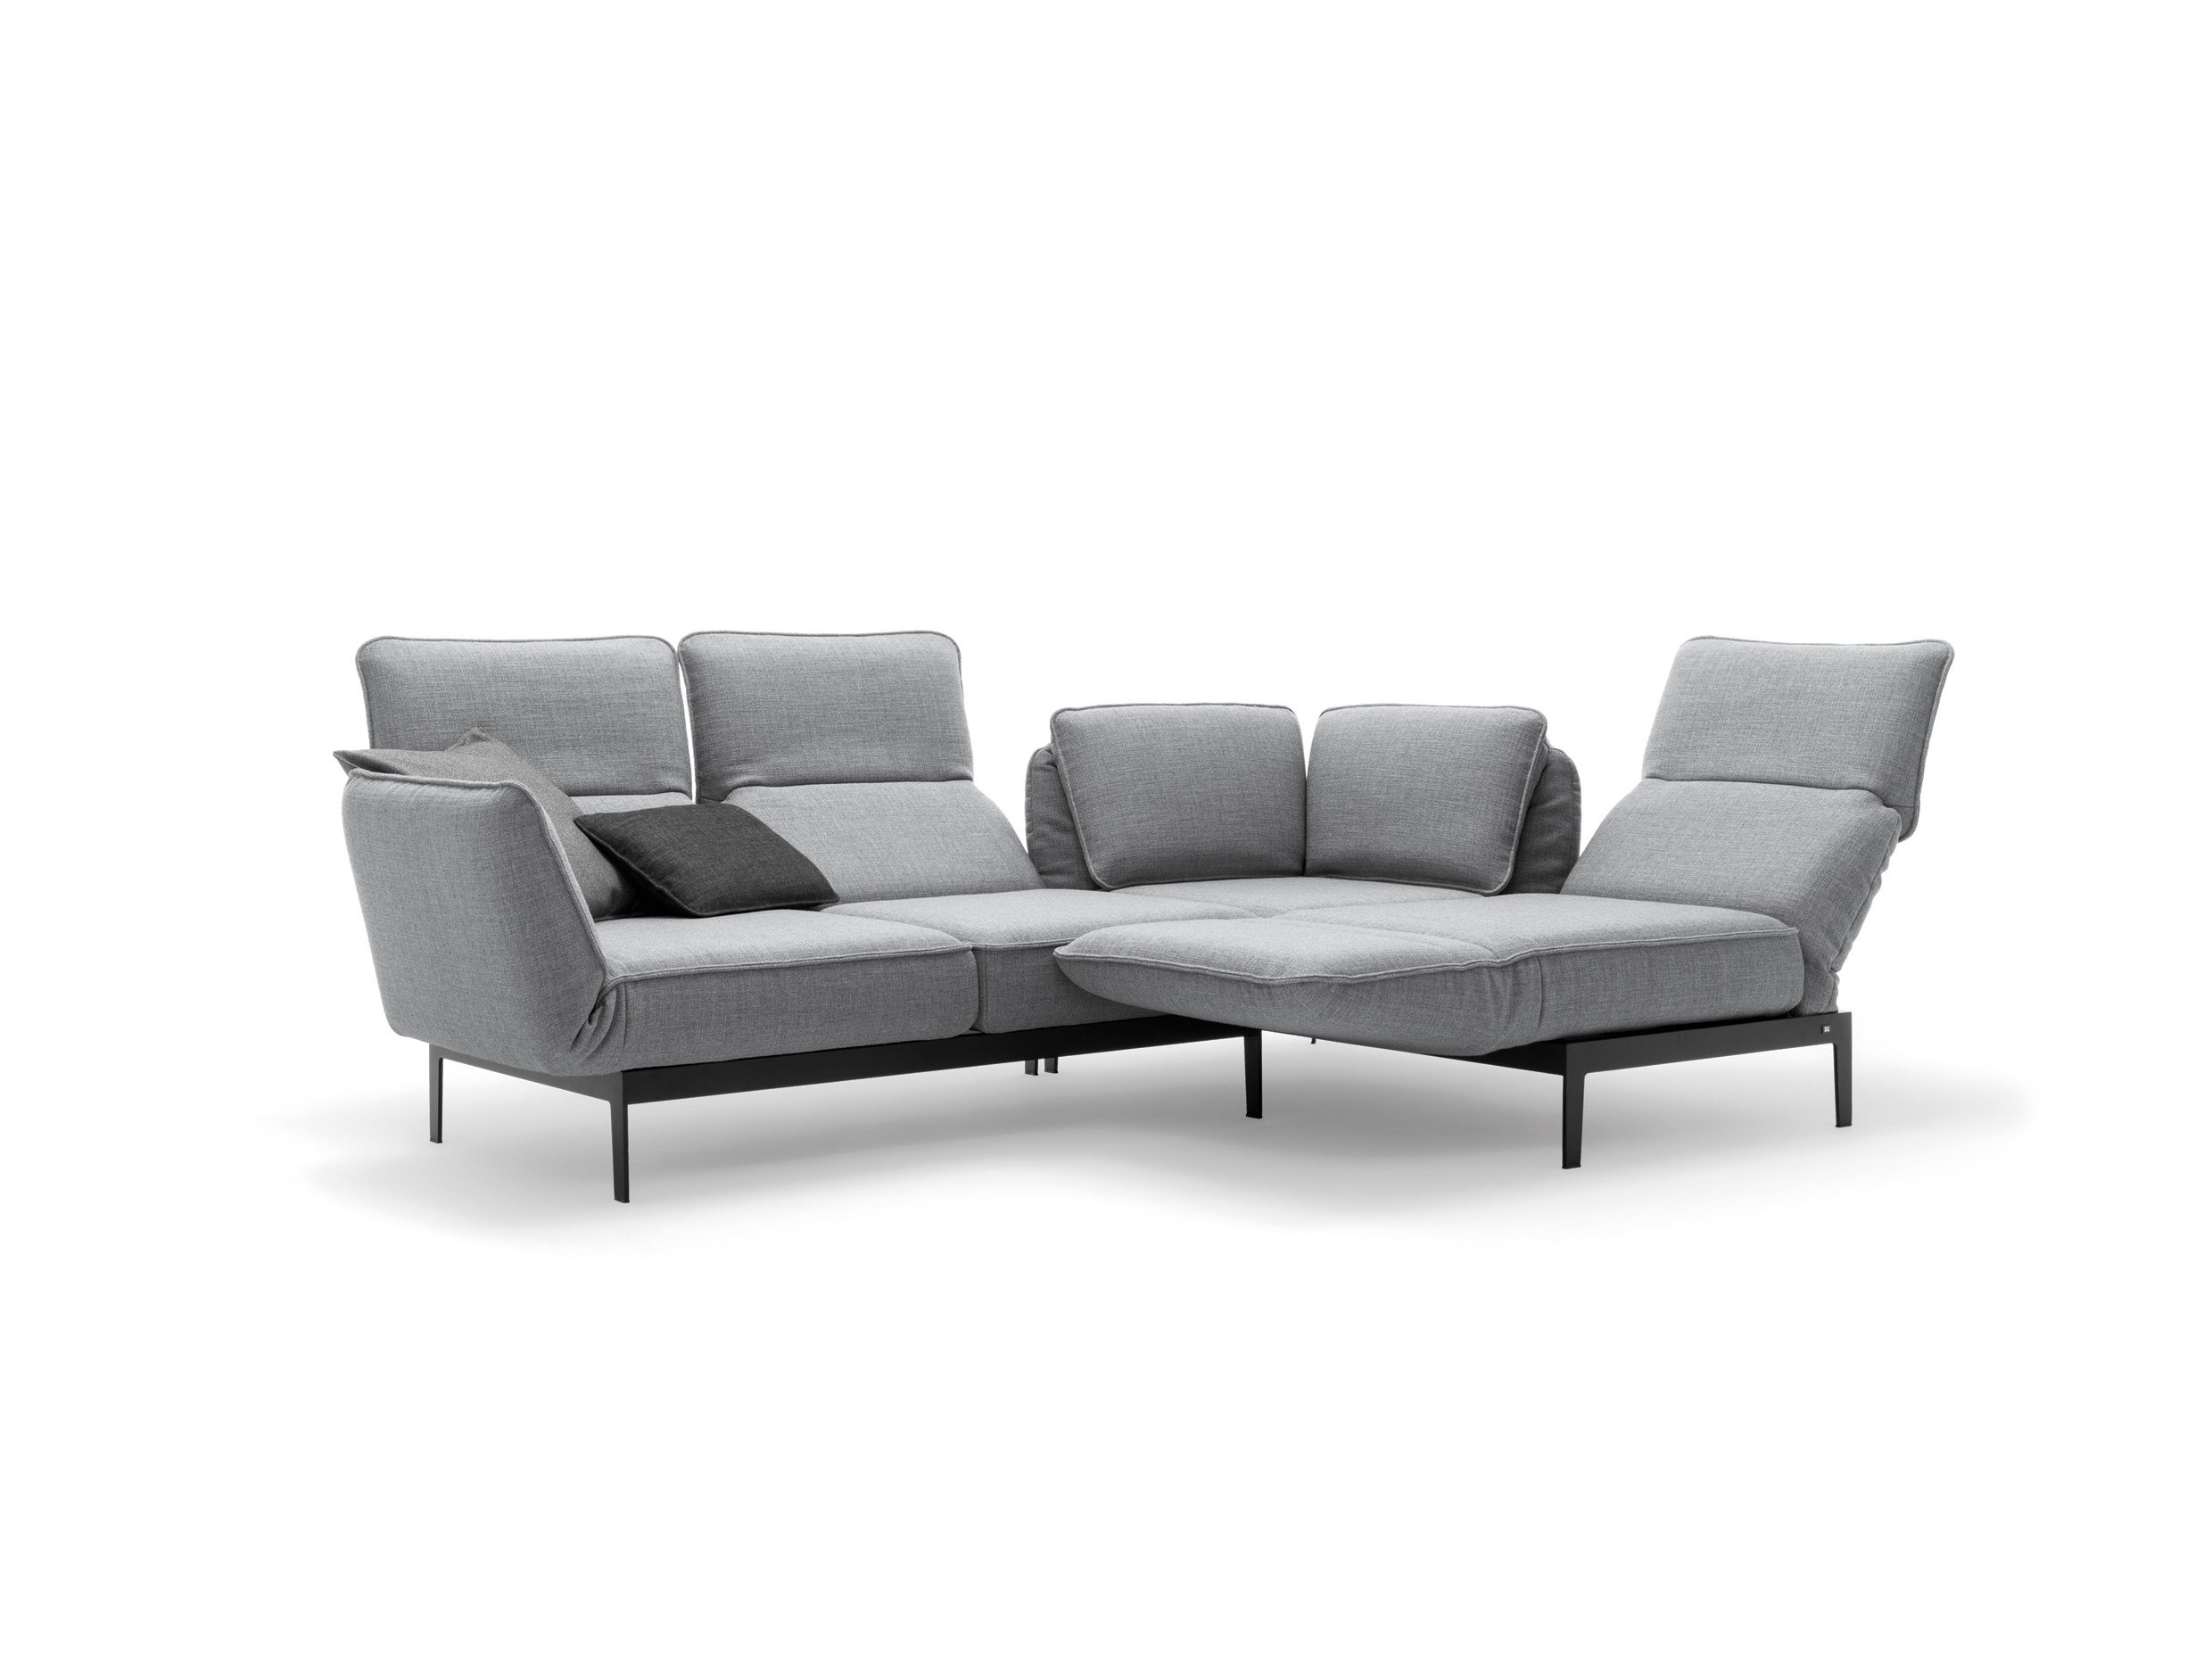 mera corner sofa mera collection by rolf benz design. Black Bedroom Furniture Sets. Home Design Ideas